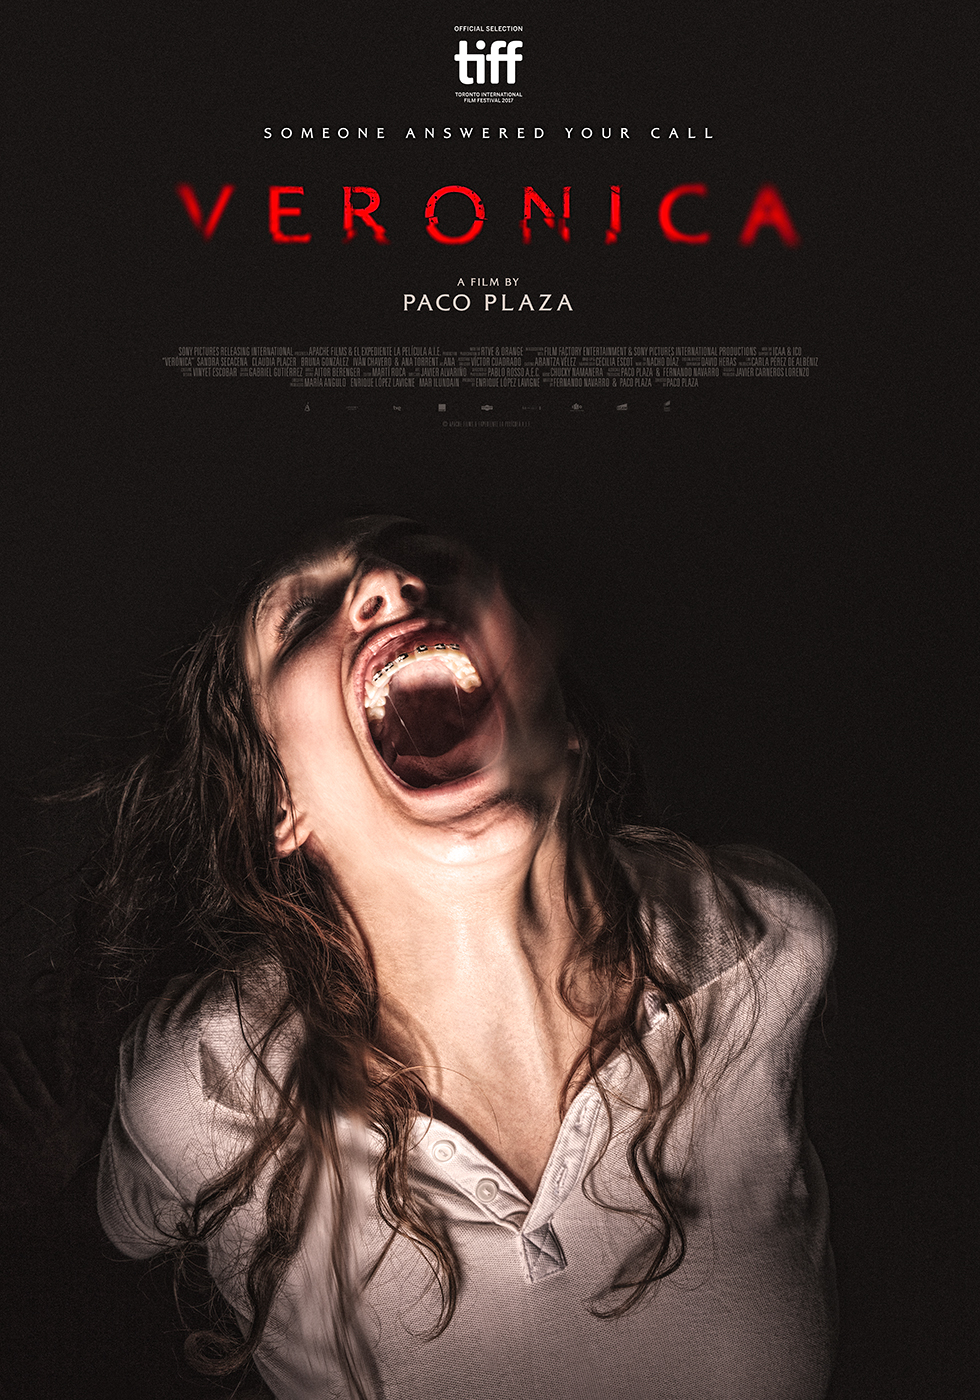 Veronica  film poster, featuring a screaming teenage girl, Veronica, on a black background.